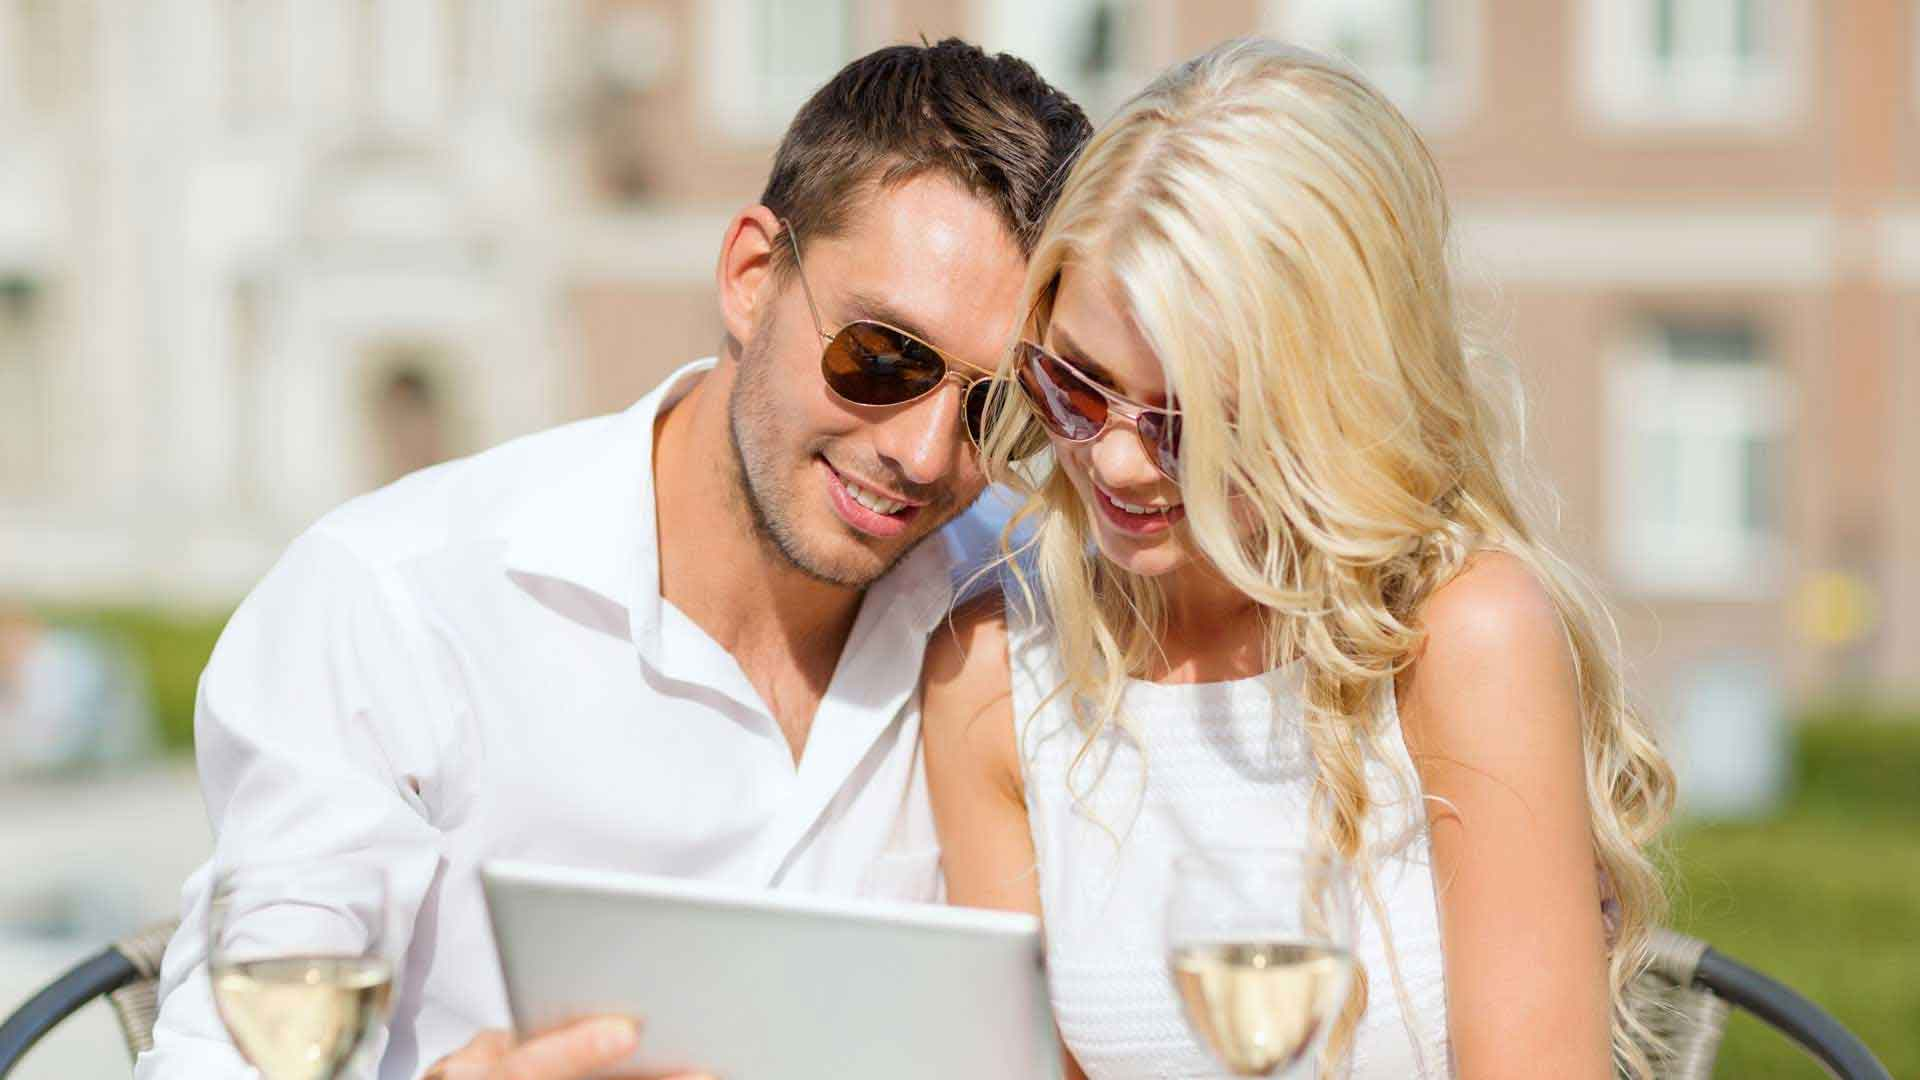 Dating places in memphis tn